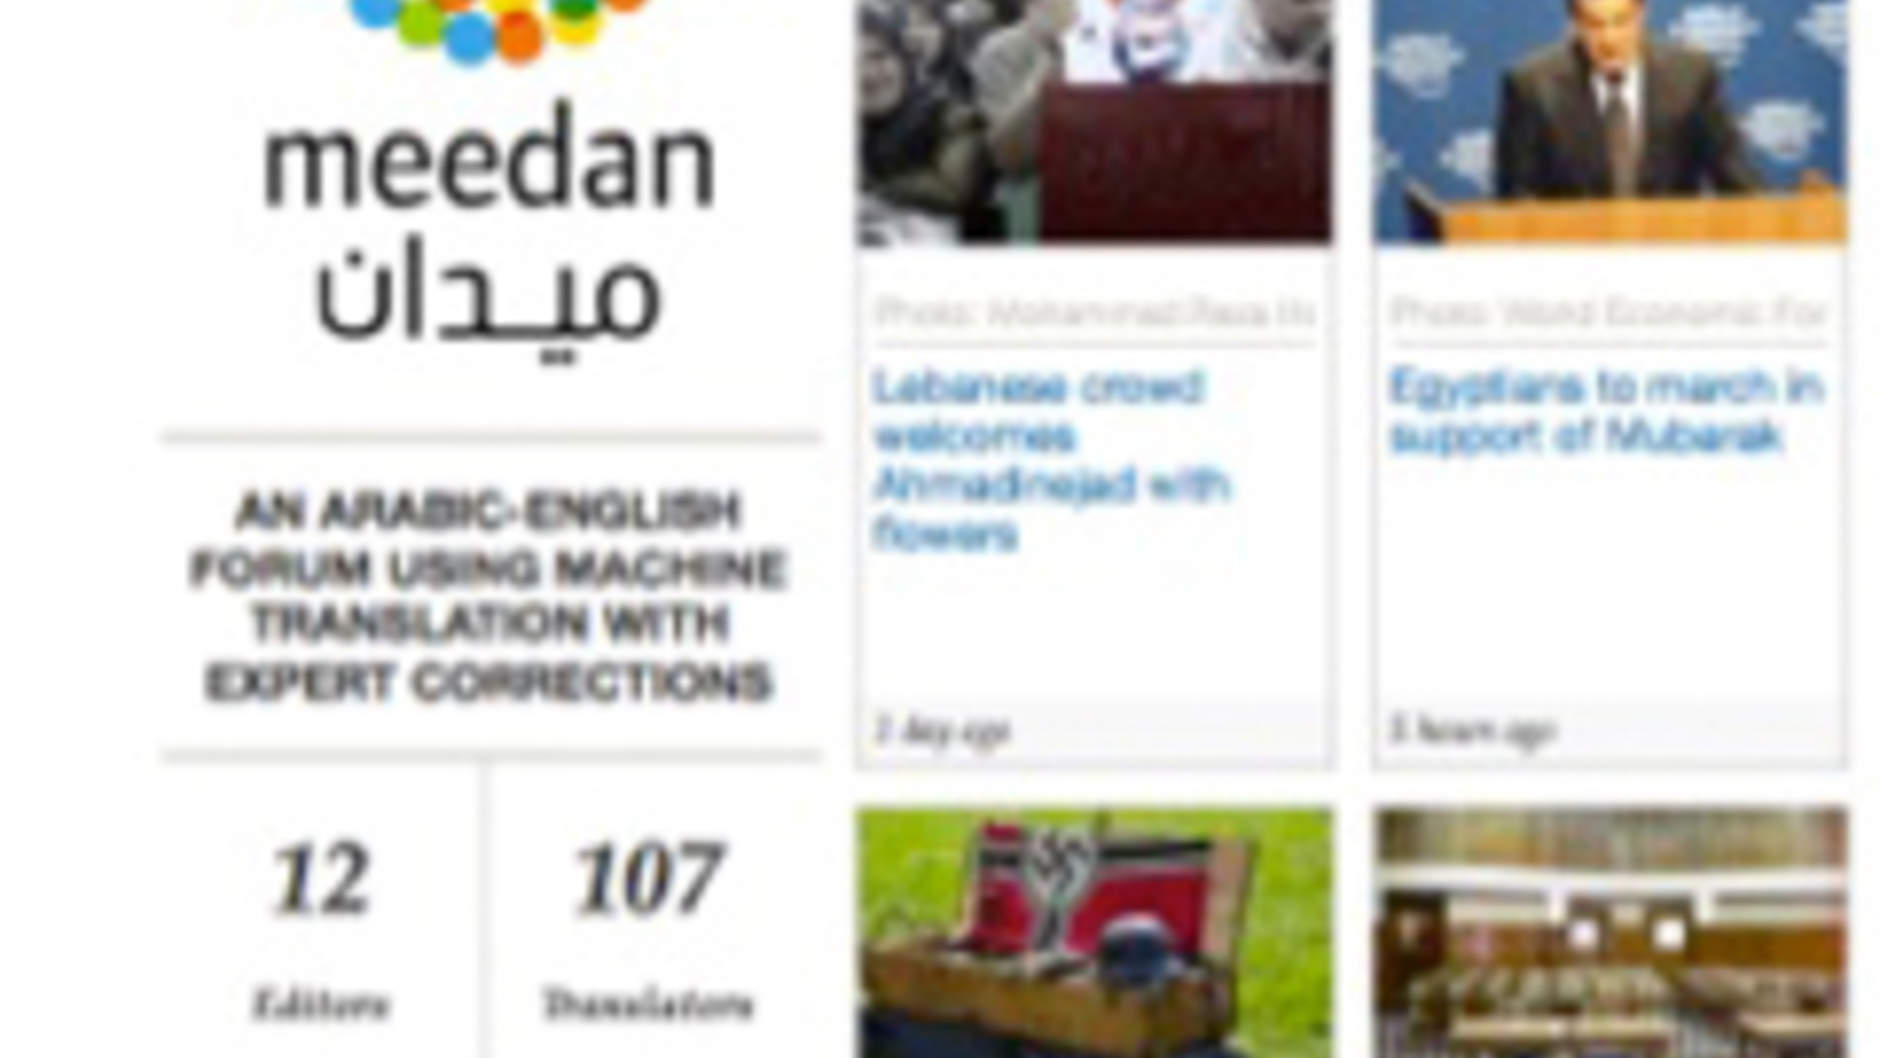 Coexist developing Meedan.org with Meedan a specialist in on-line translation